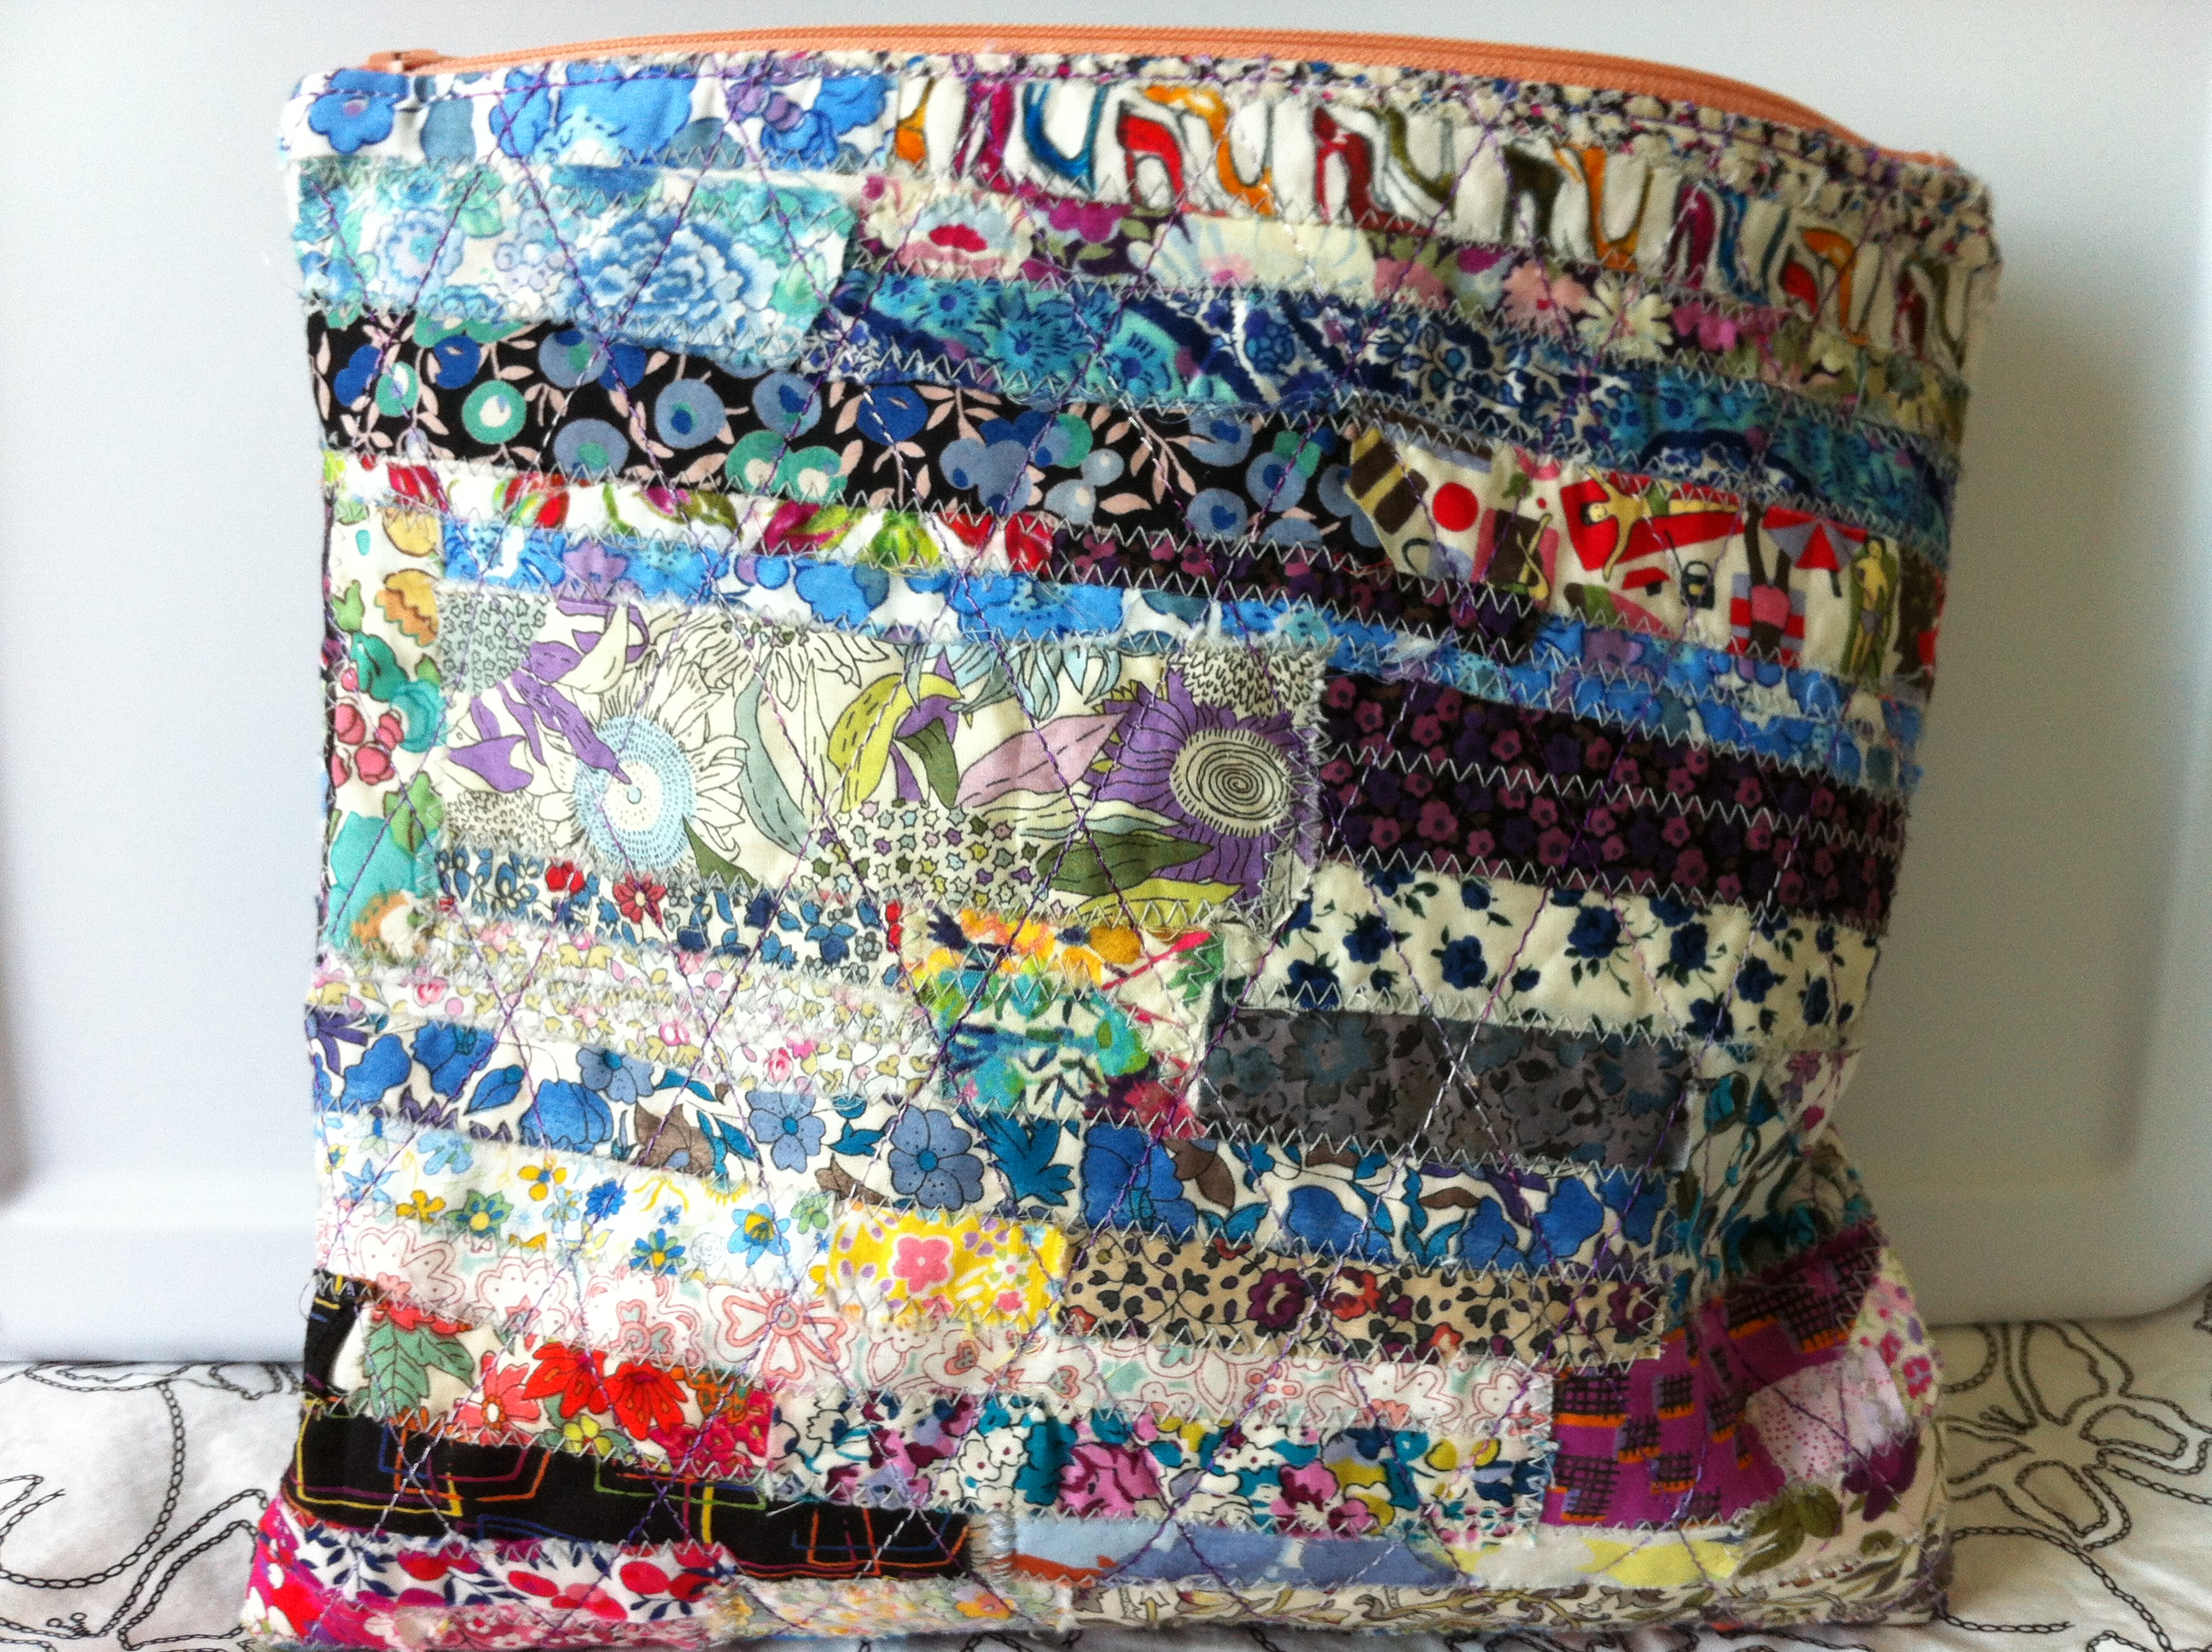 Liberty Scrap Quilted Pouch Tutorial